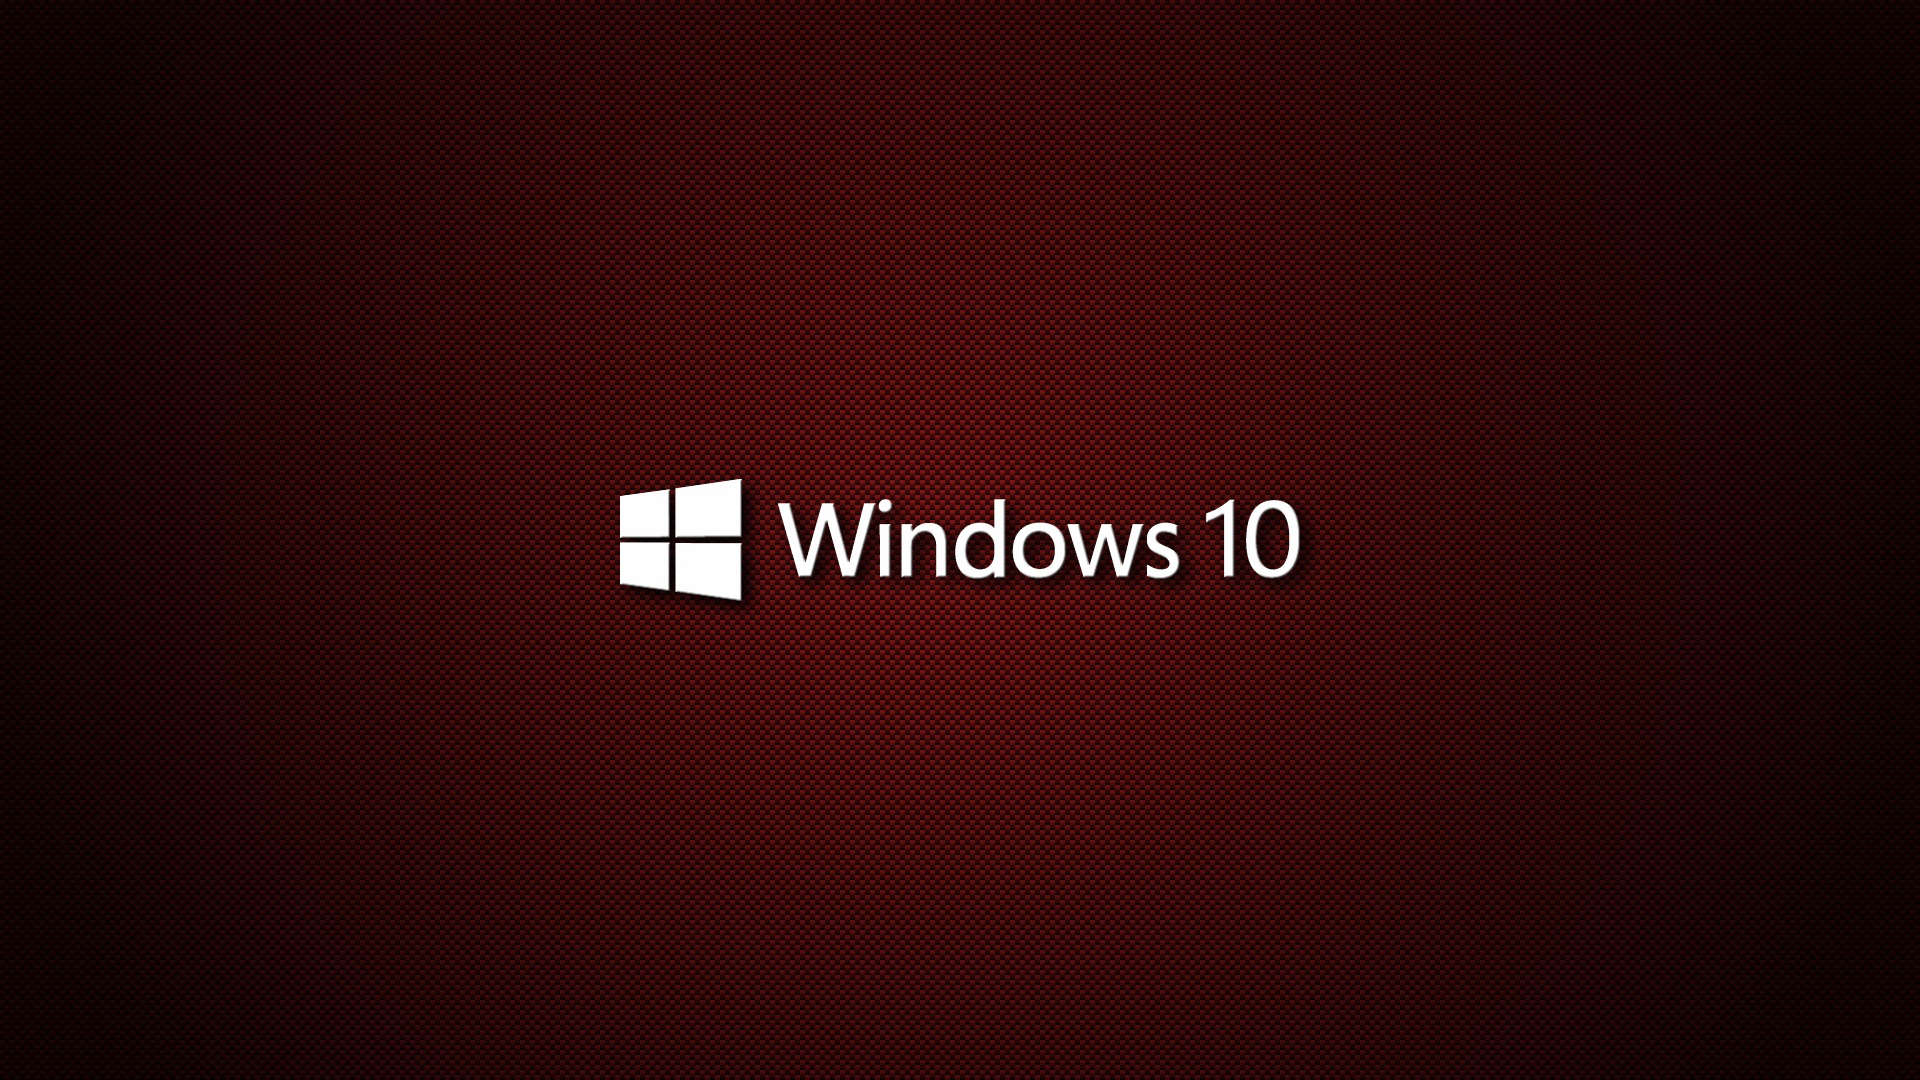 Windows 10 Wallpaper Red carbon   HD Wallpapers Desktop Wallpaper 1920x1080